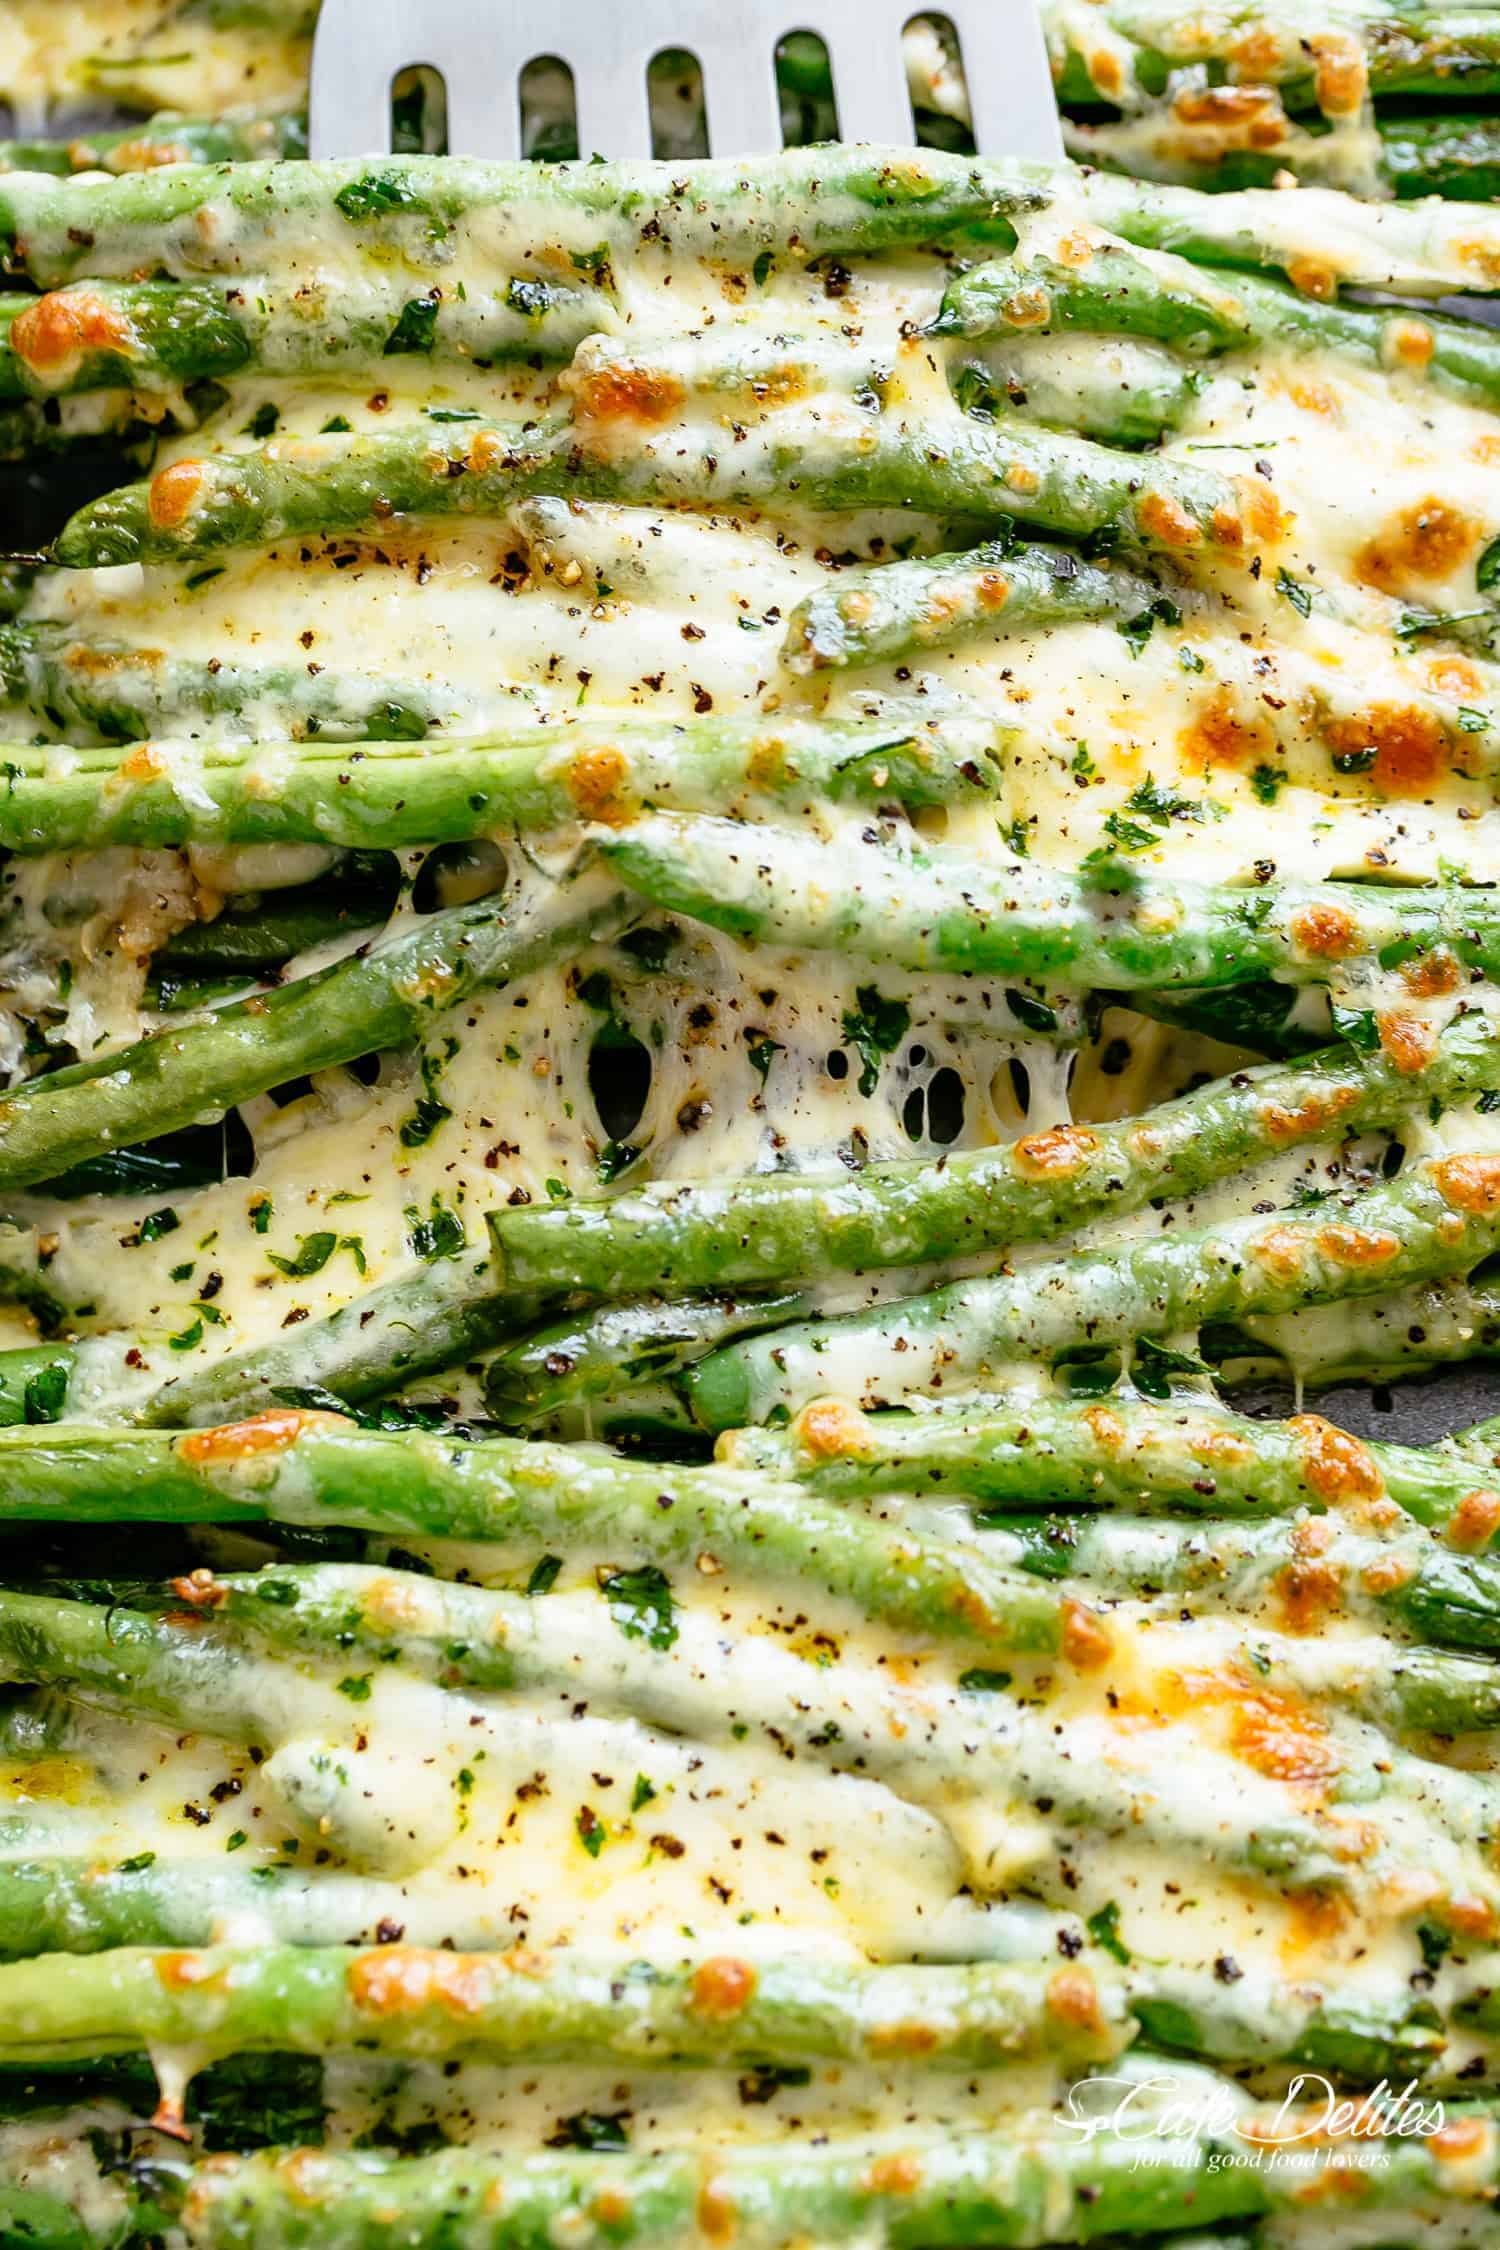 Melted cheese on roasted green beans